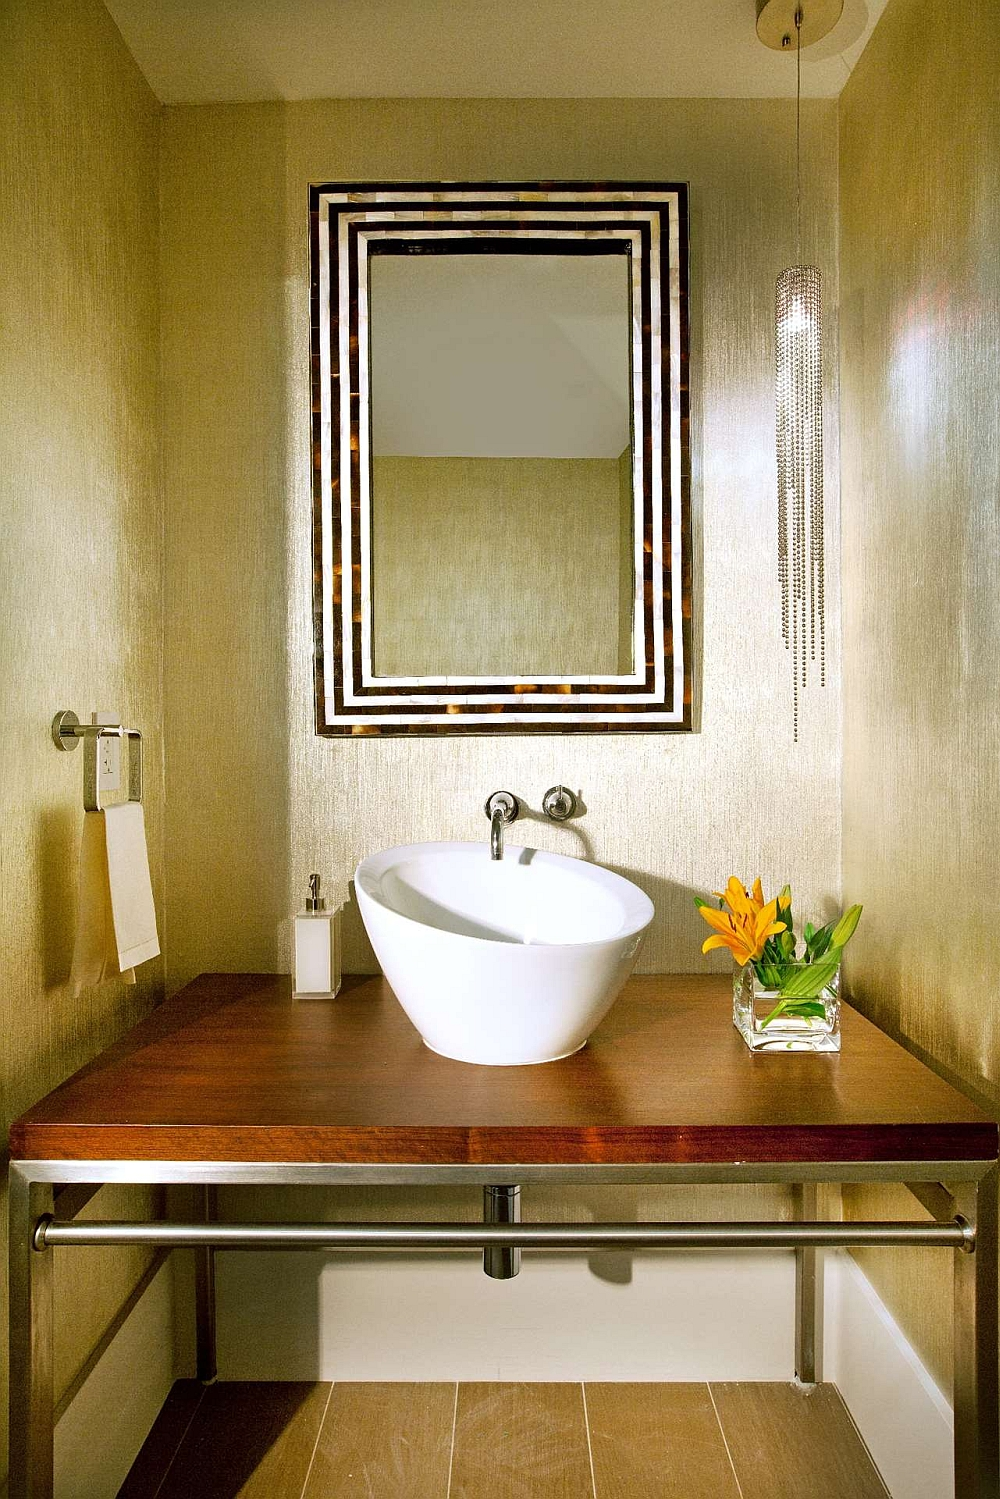 Wallcovering brings golden glint and texture to the powder room